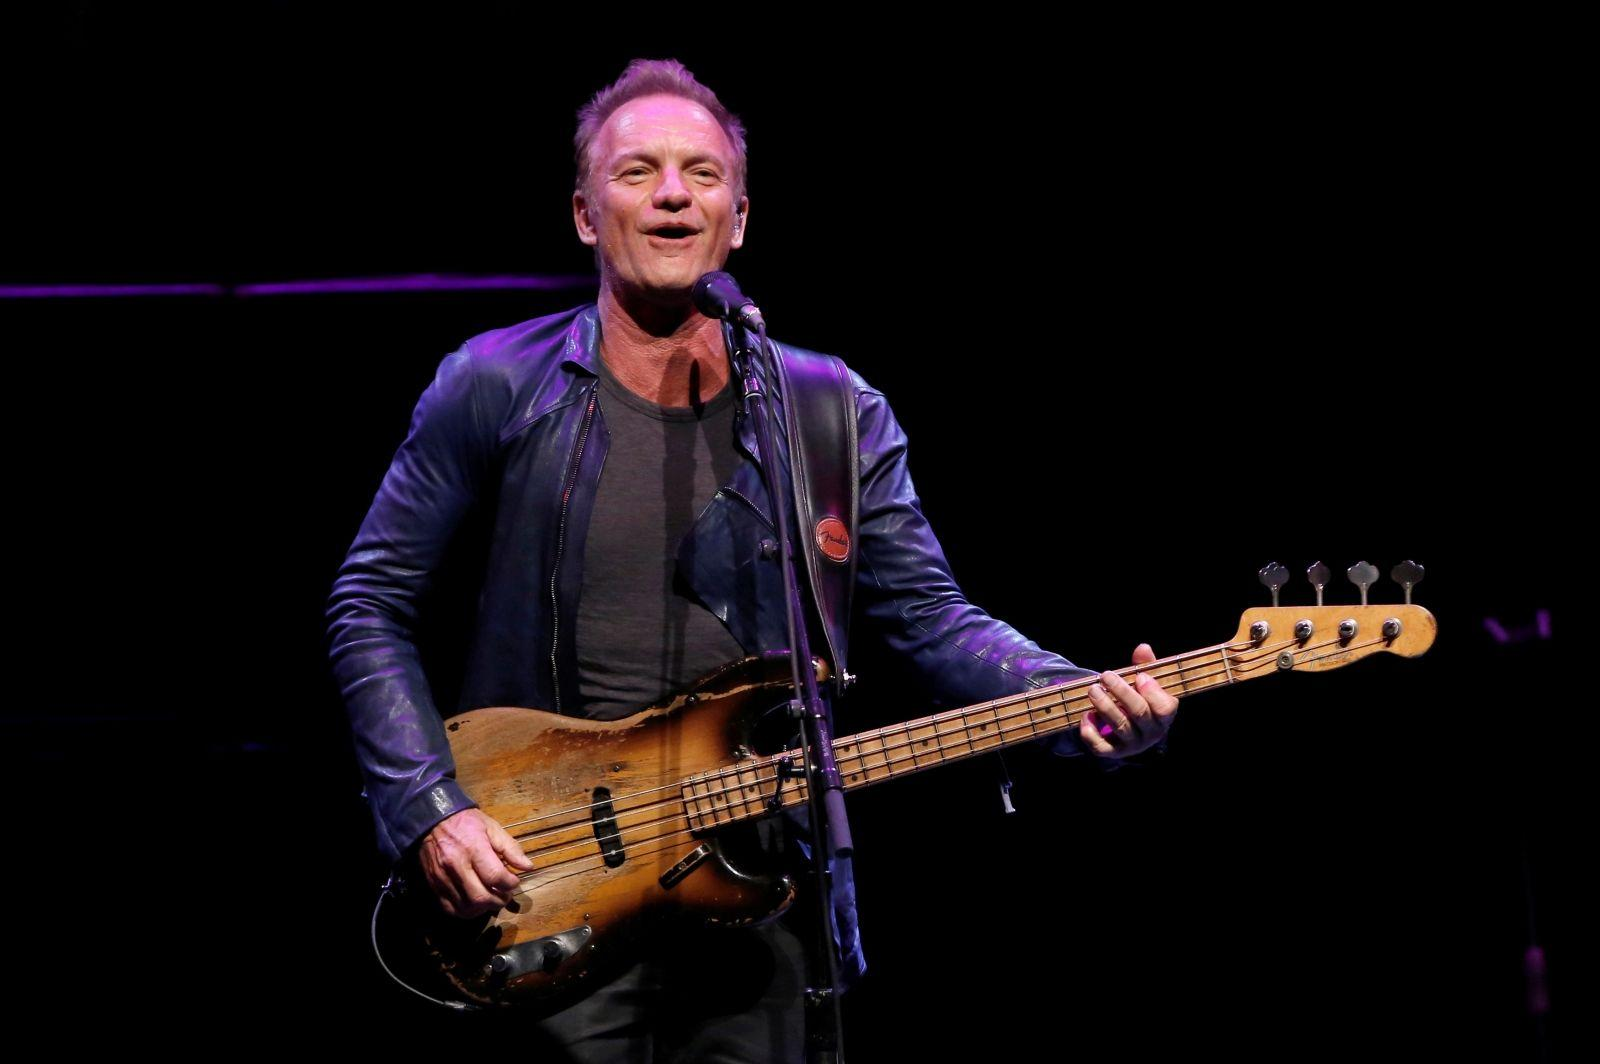 Sting tour: The Police singer announces European dates for 2017 to ...